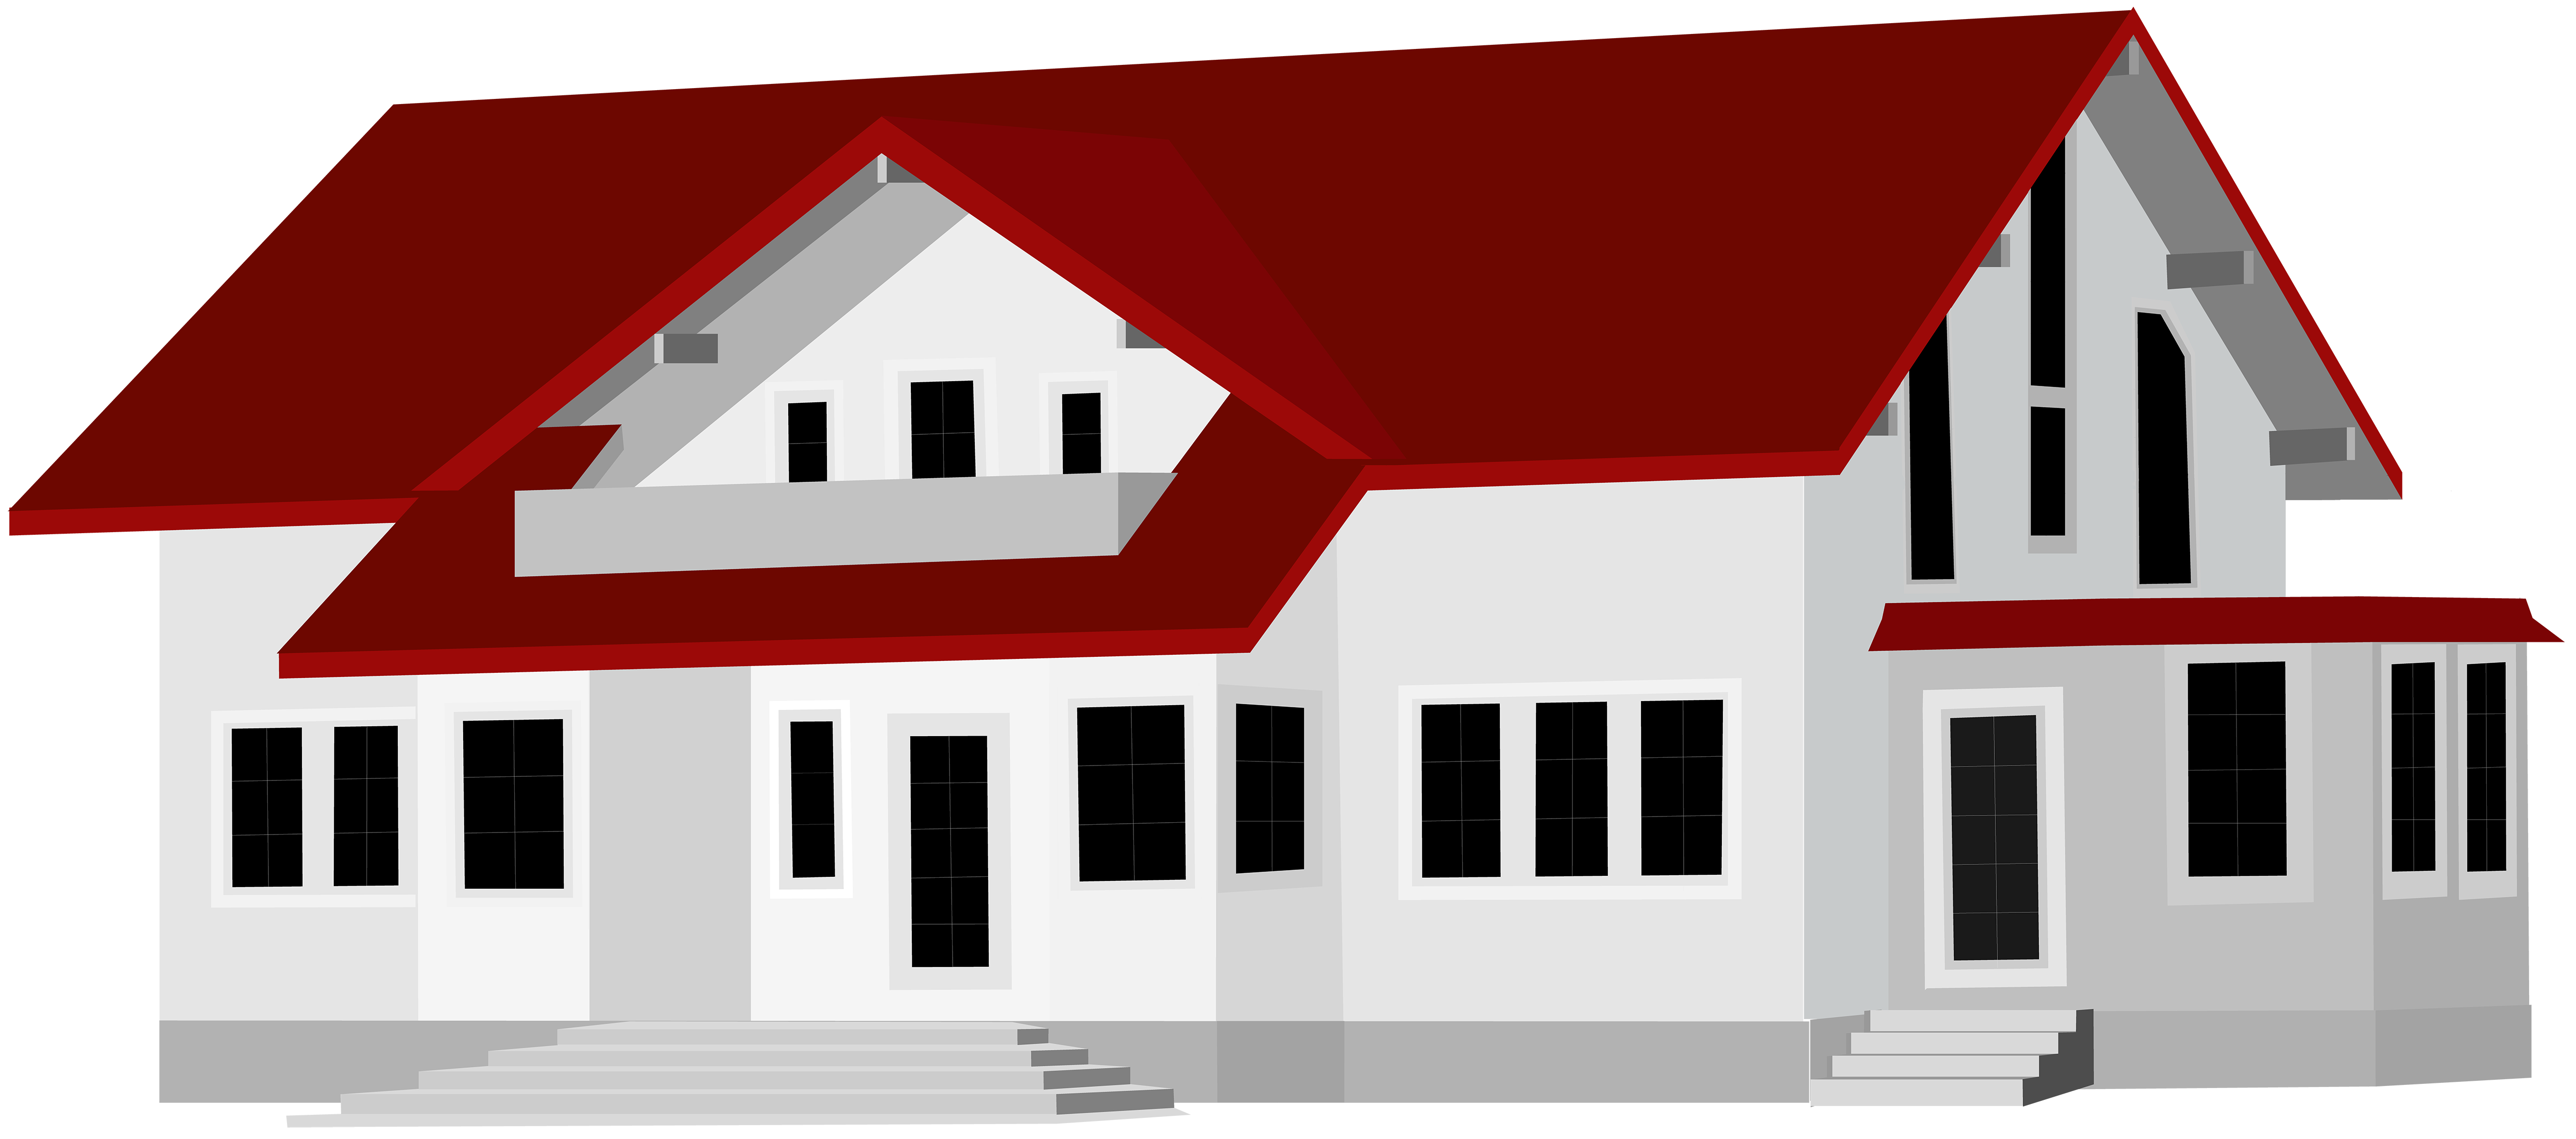 House Clipart At GetDrawings.com